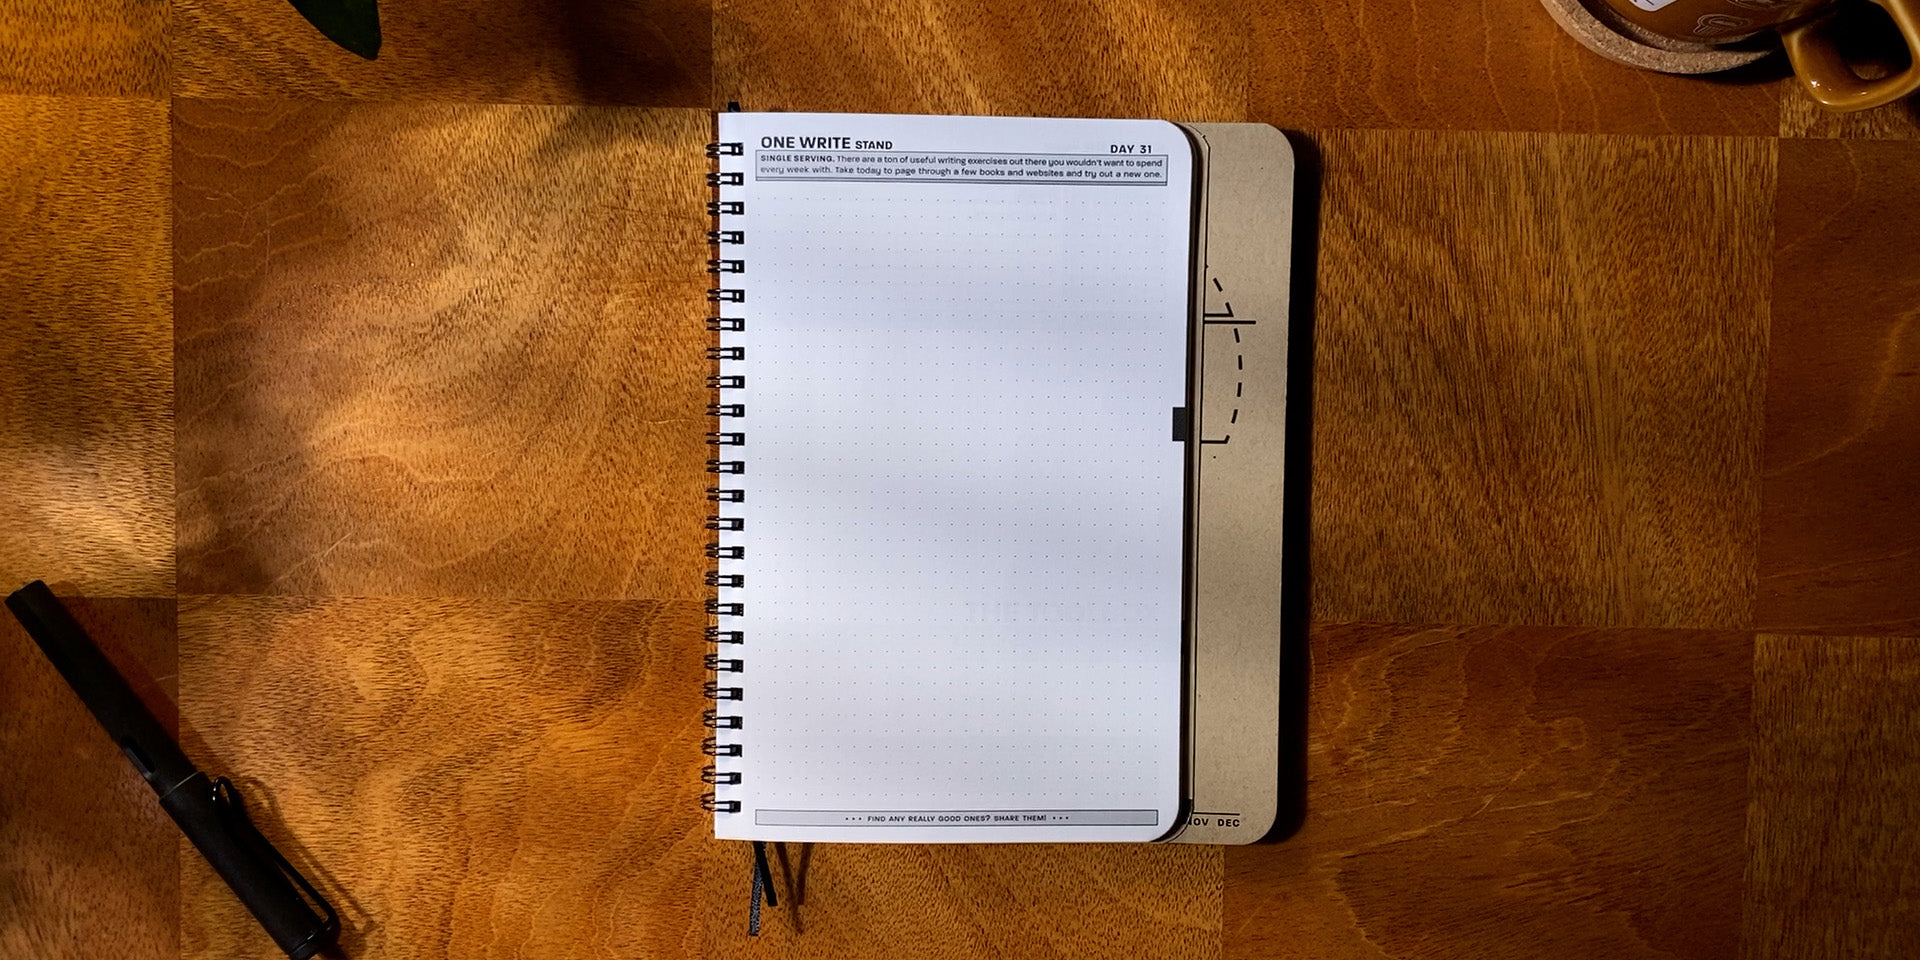 Practice Workbook open to the One Write Stand Exercise